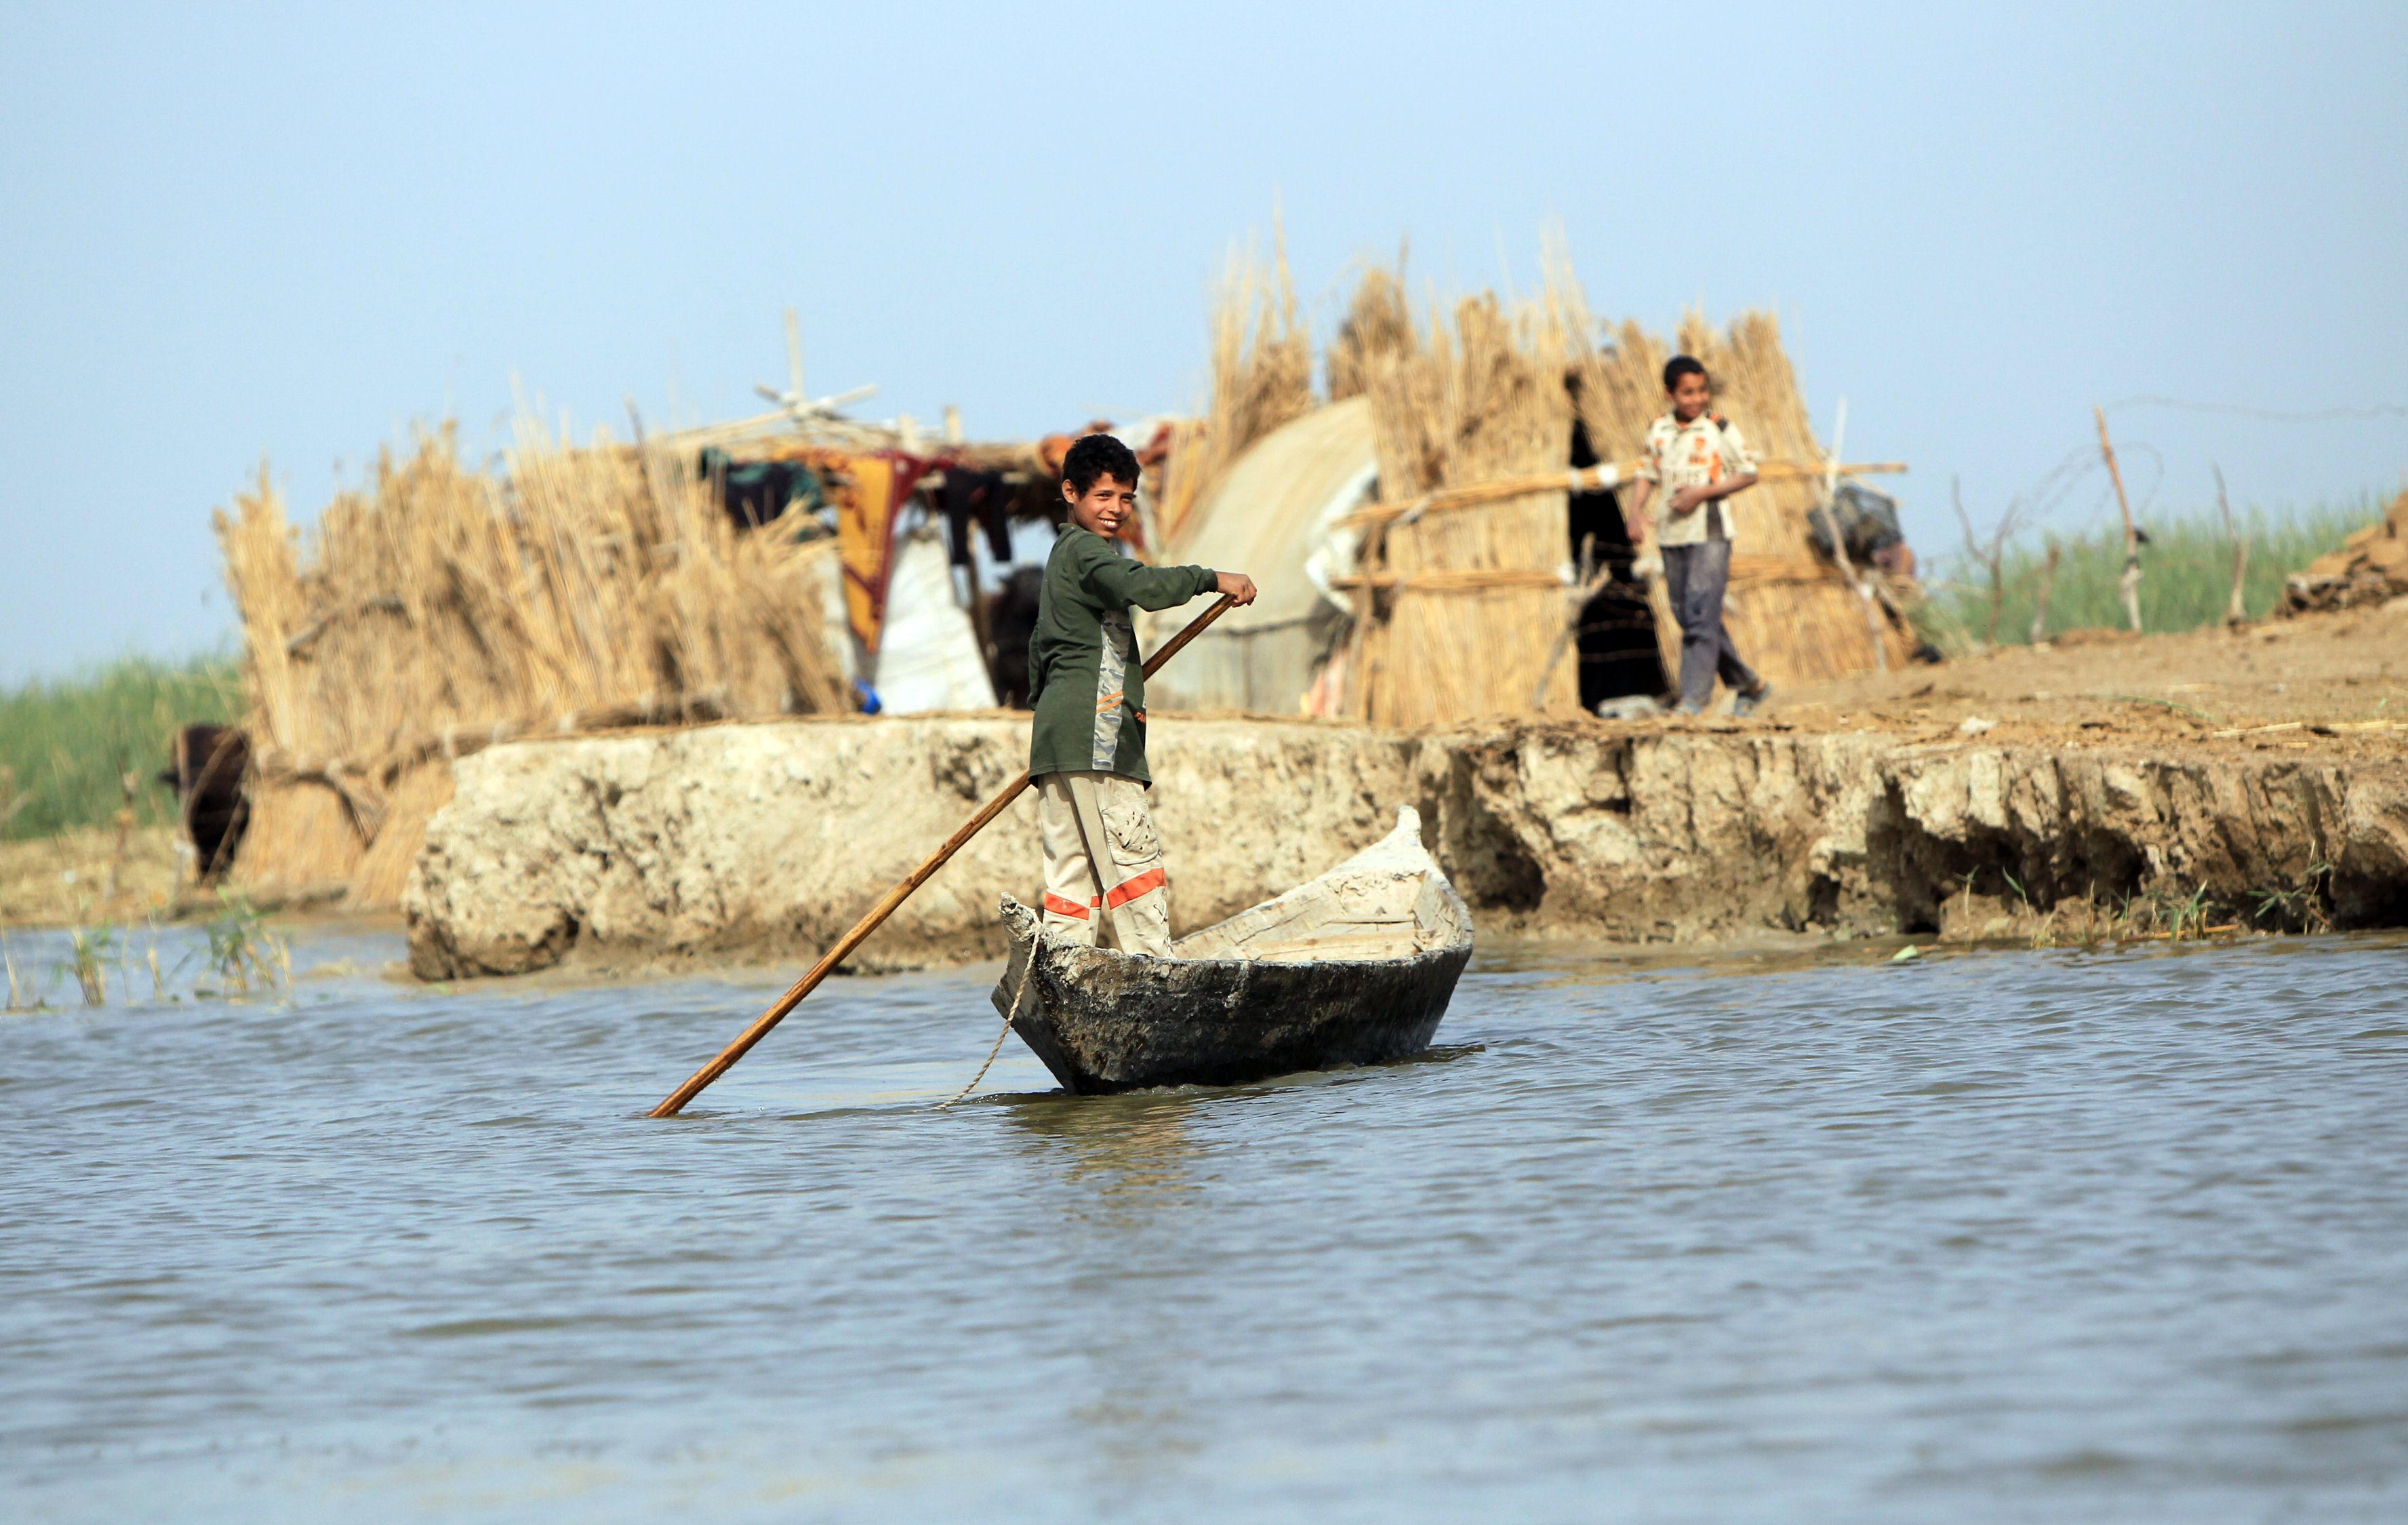 An Iraqi boy paddles a boat in the marshes near the small township of Chebayish, on the left bank of Euphrates, near Nasiriyah, 300 kilometres southeast of Baghdad, on April 6, 2013. The inhabitants of these ancient marshes are today suffering from the slow suffocation of the marshes due to drought which is altering their fishing patterns and the migration of birds and the breeding of water buffalo. During the regime of the late leader Saddam Hussein, sections of the marshes were drained.